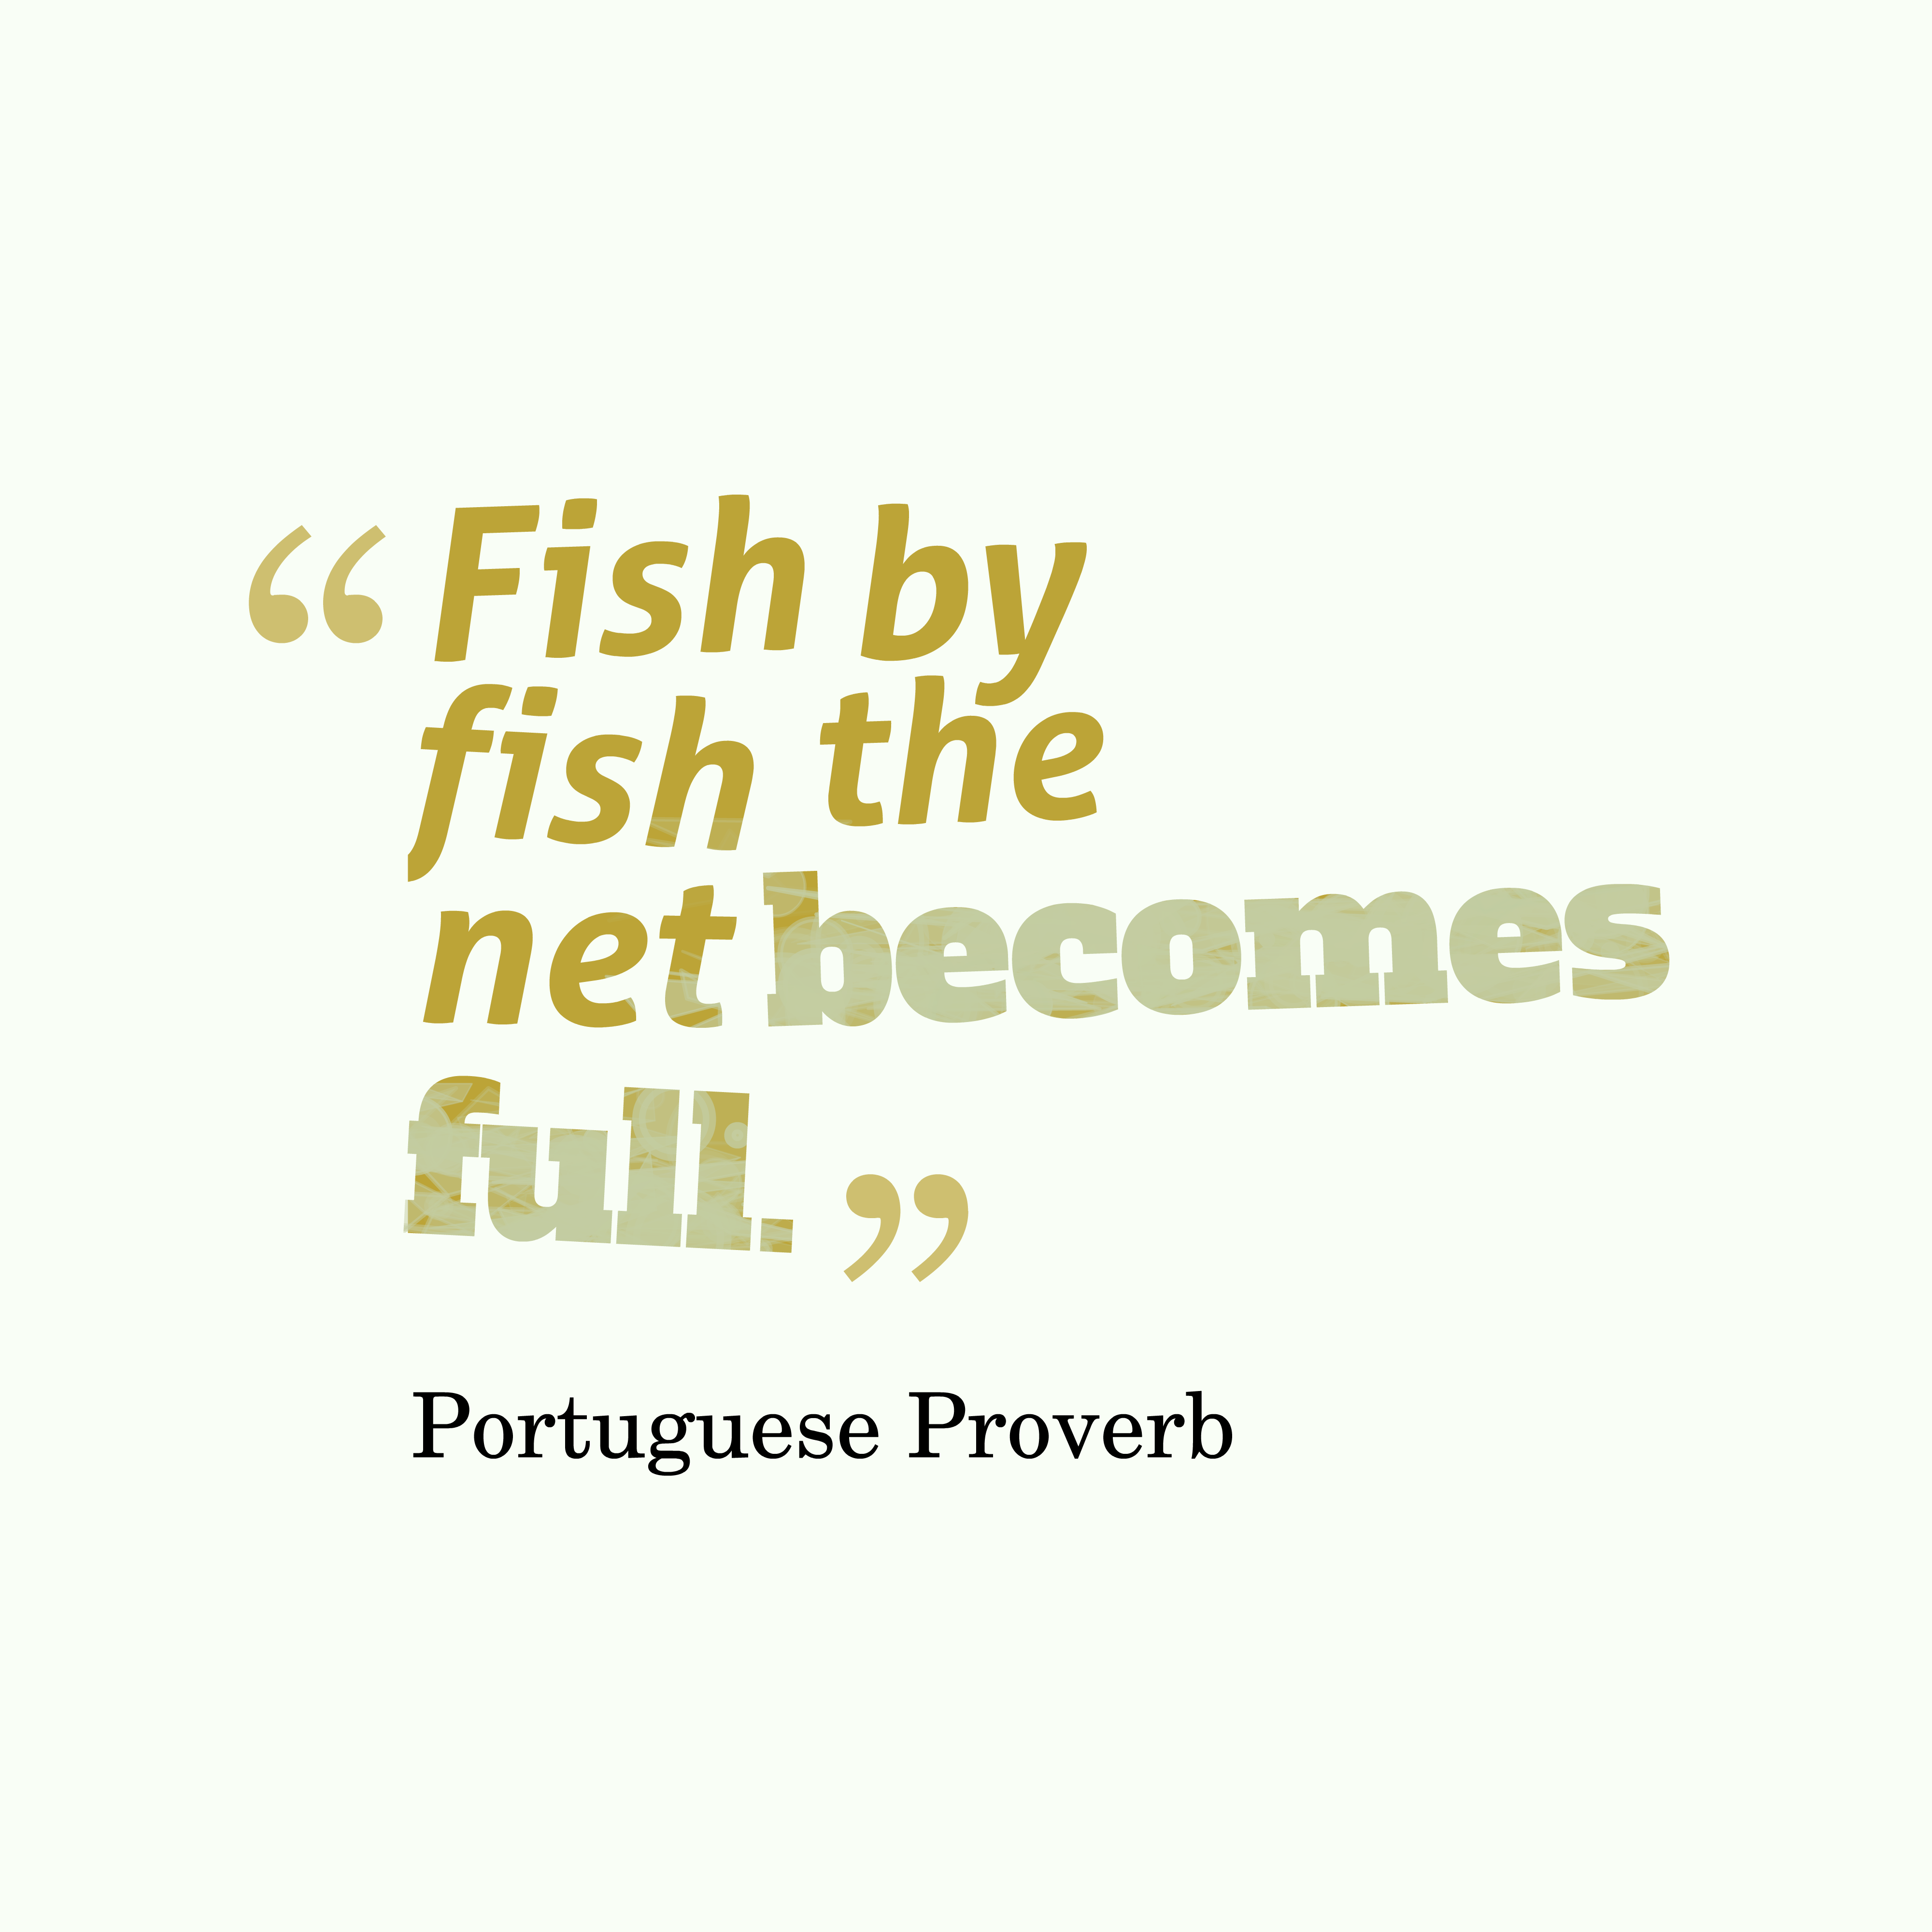 Quotes image of Fish by fish the net becomes full.